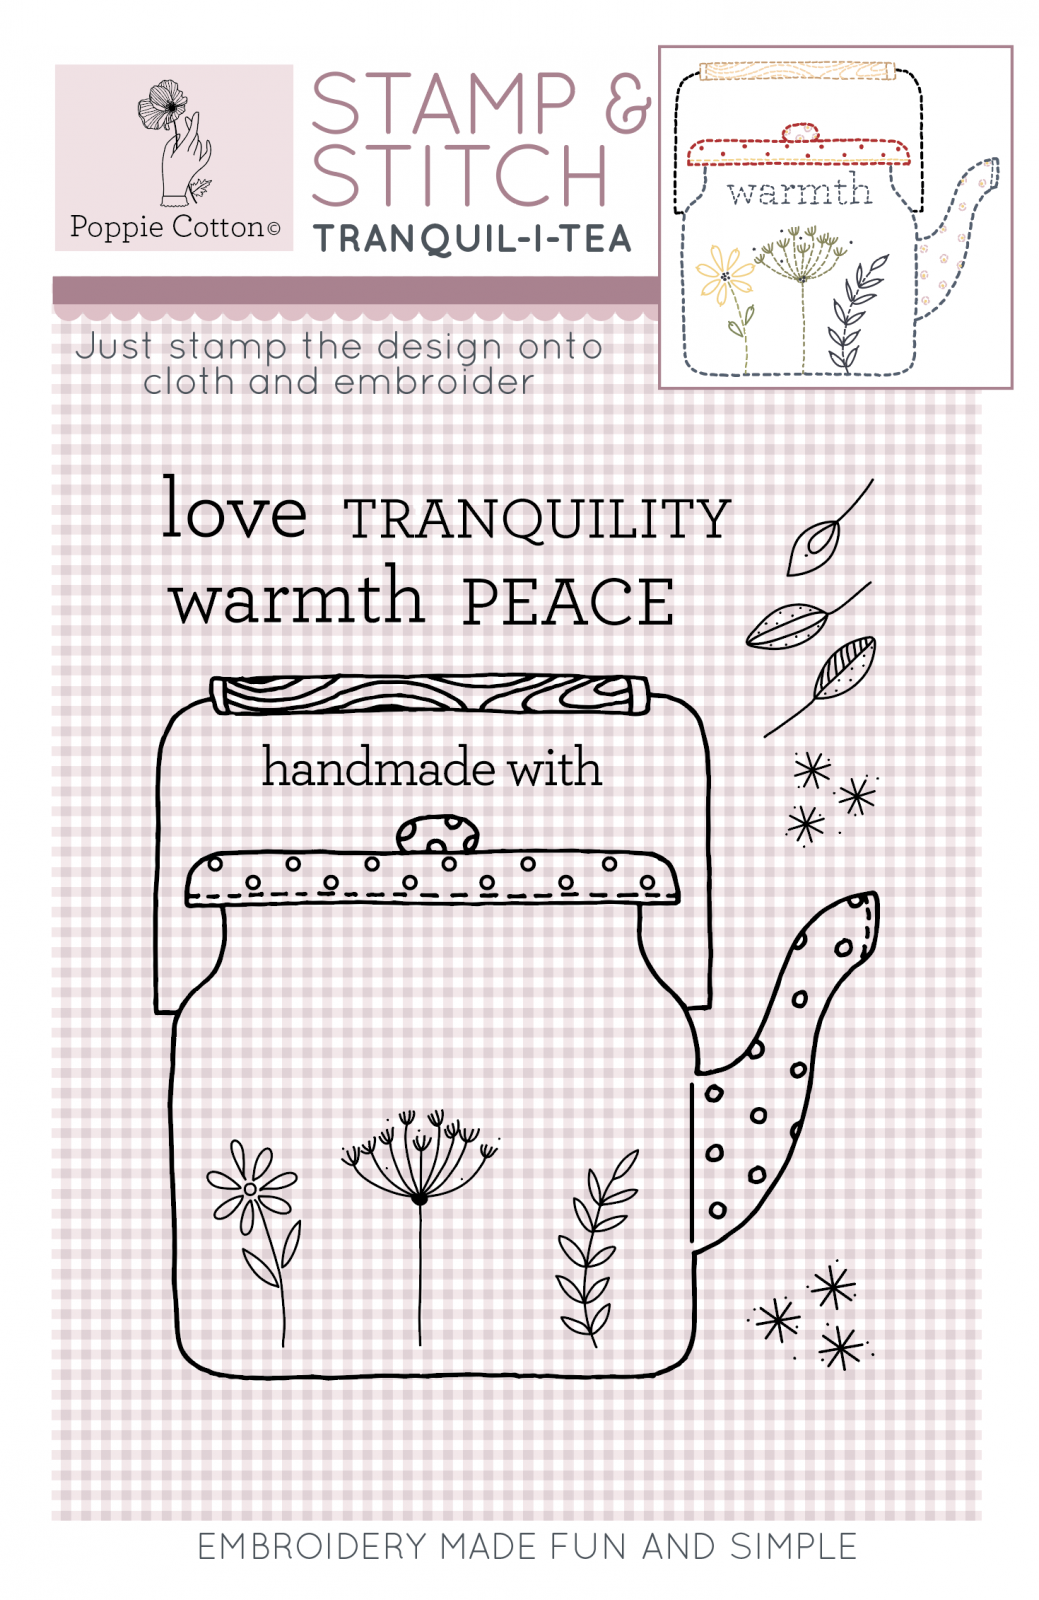 Stamp & Stitch Tranquil-i-tea Label